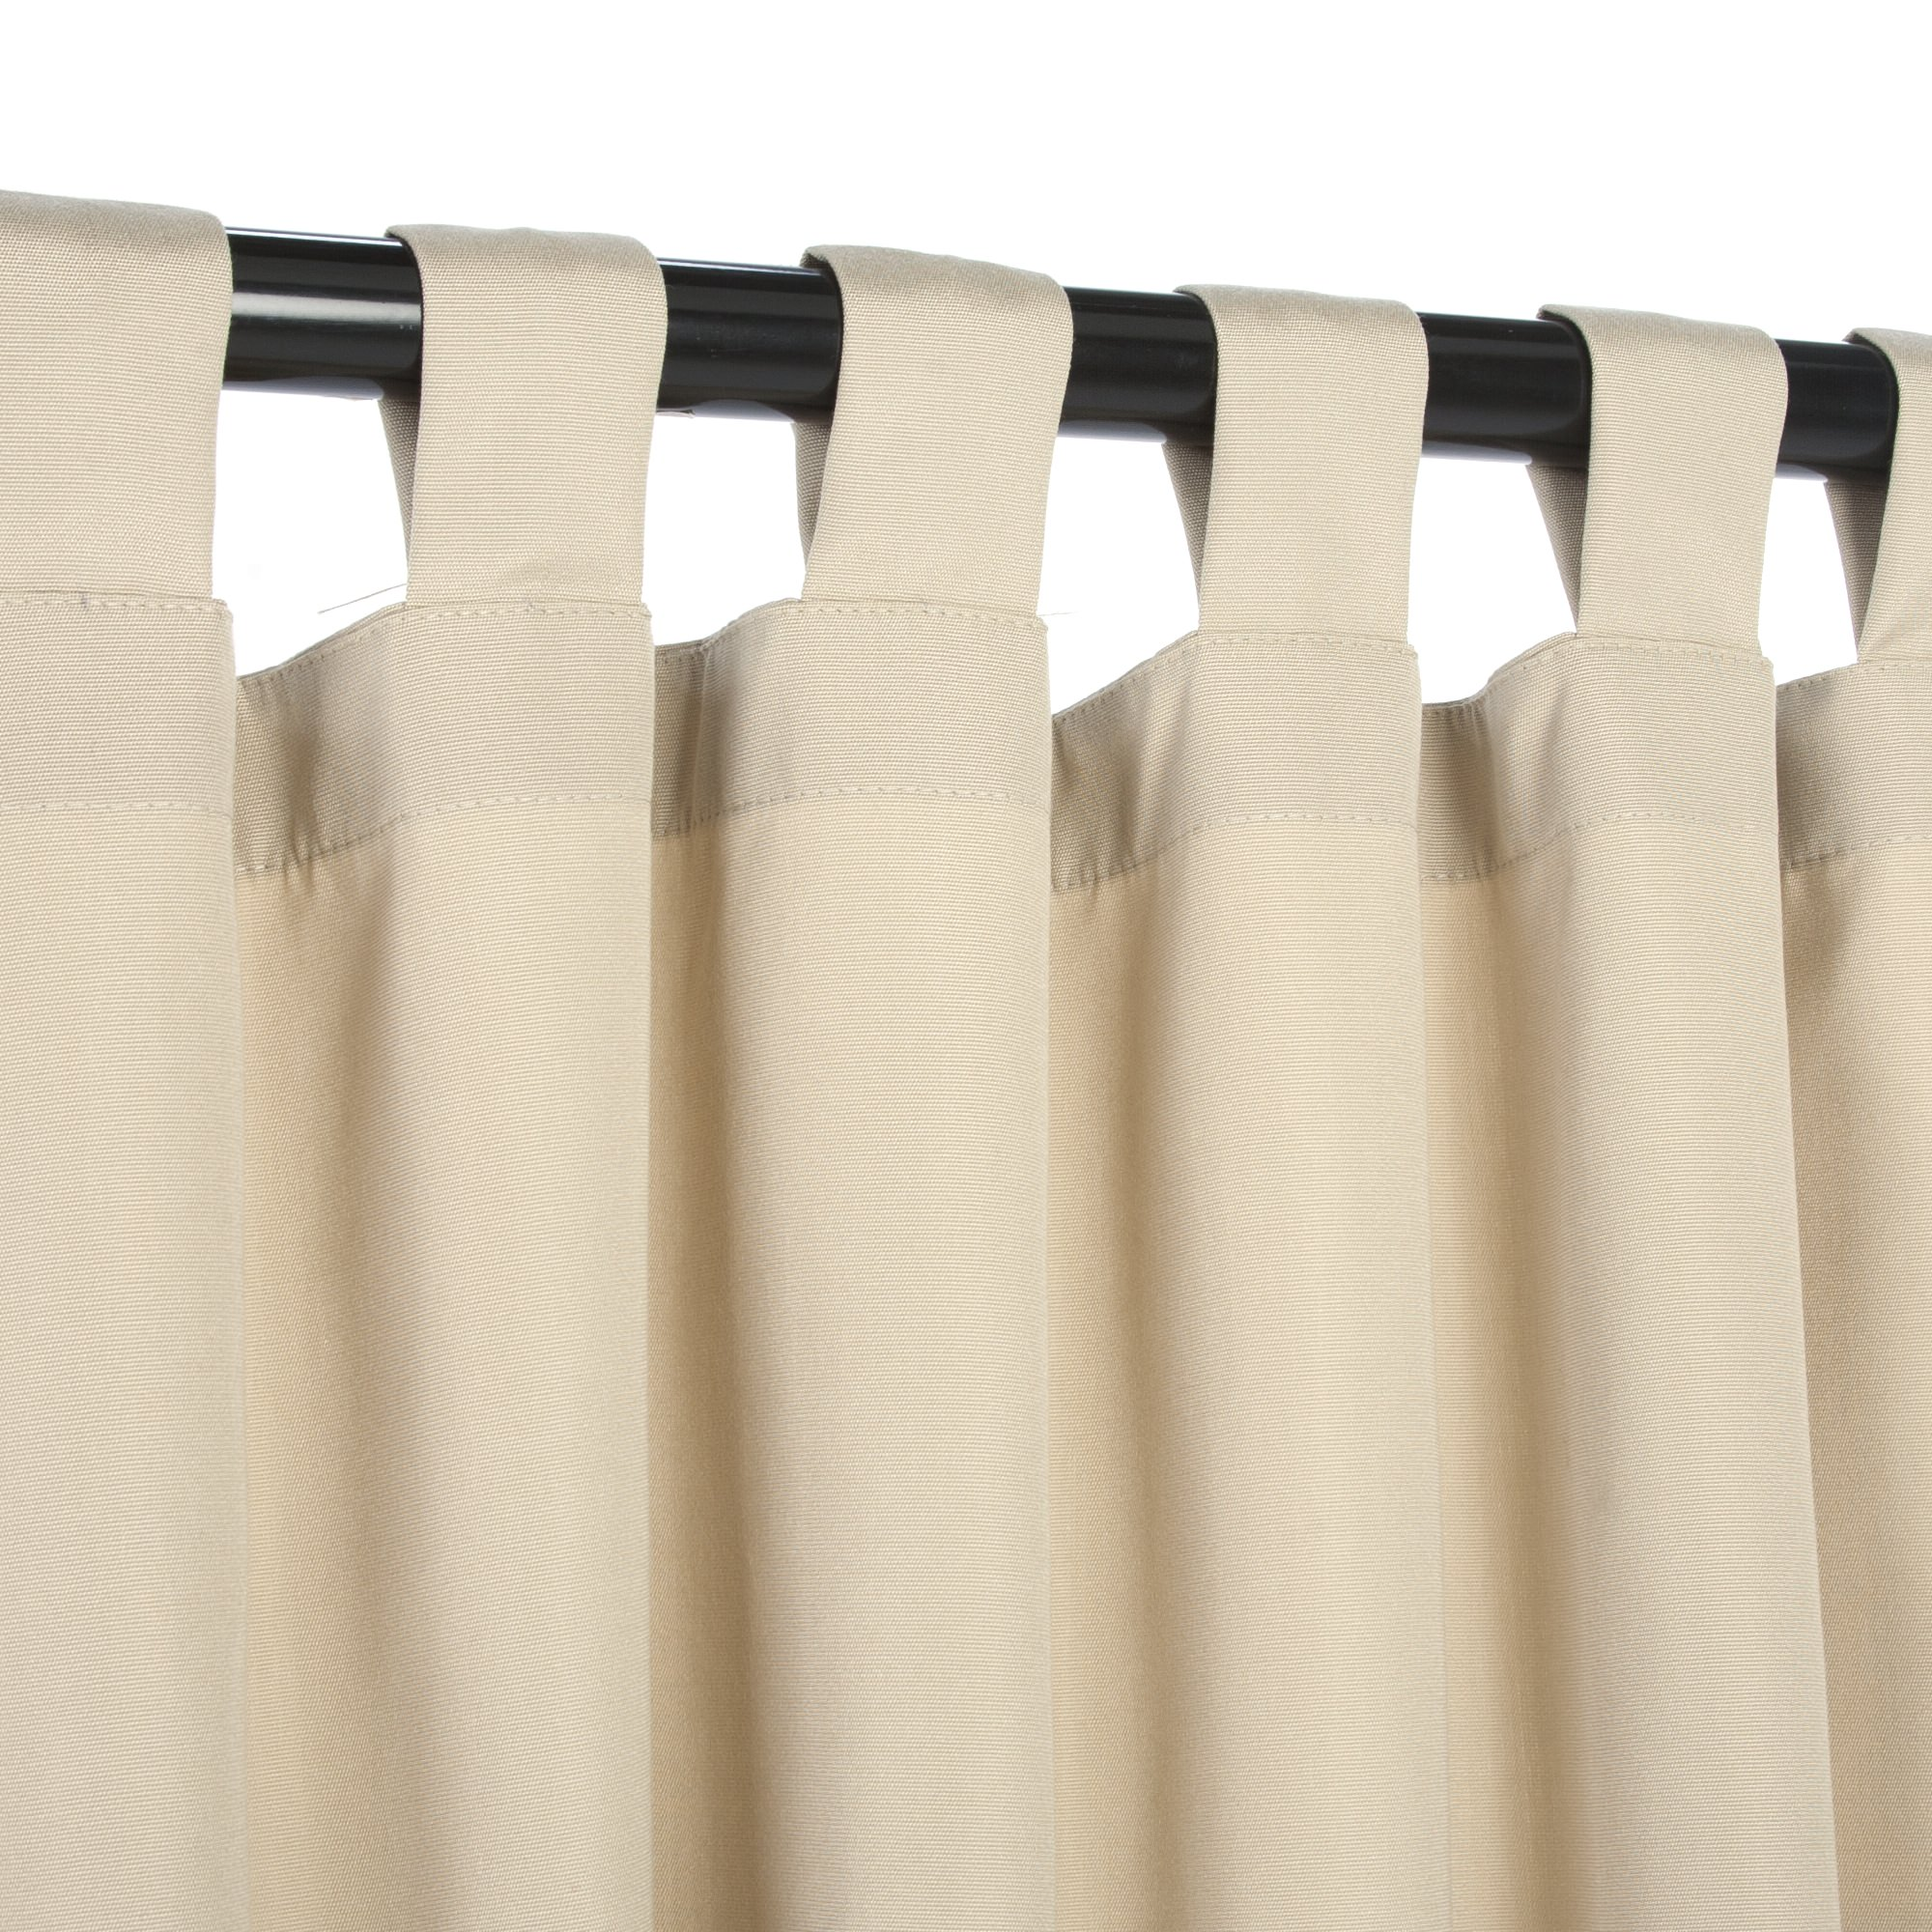 sunbrella outdoor curtain with tabs in antique beige 50 in